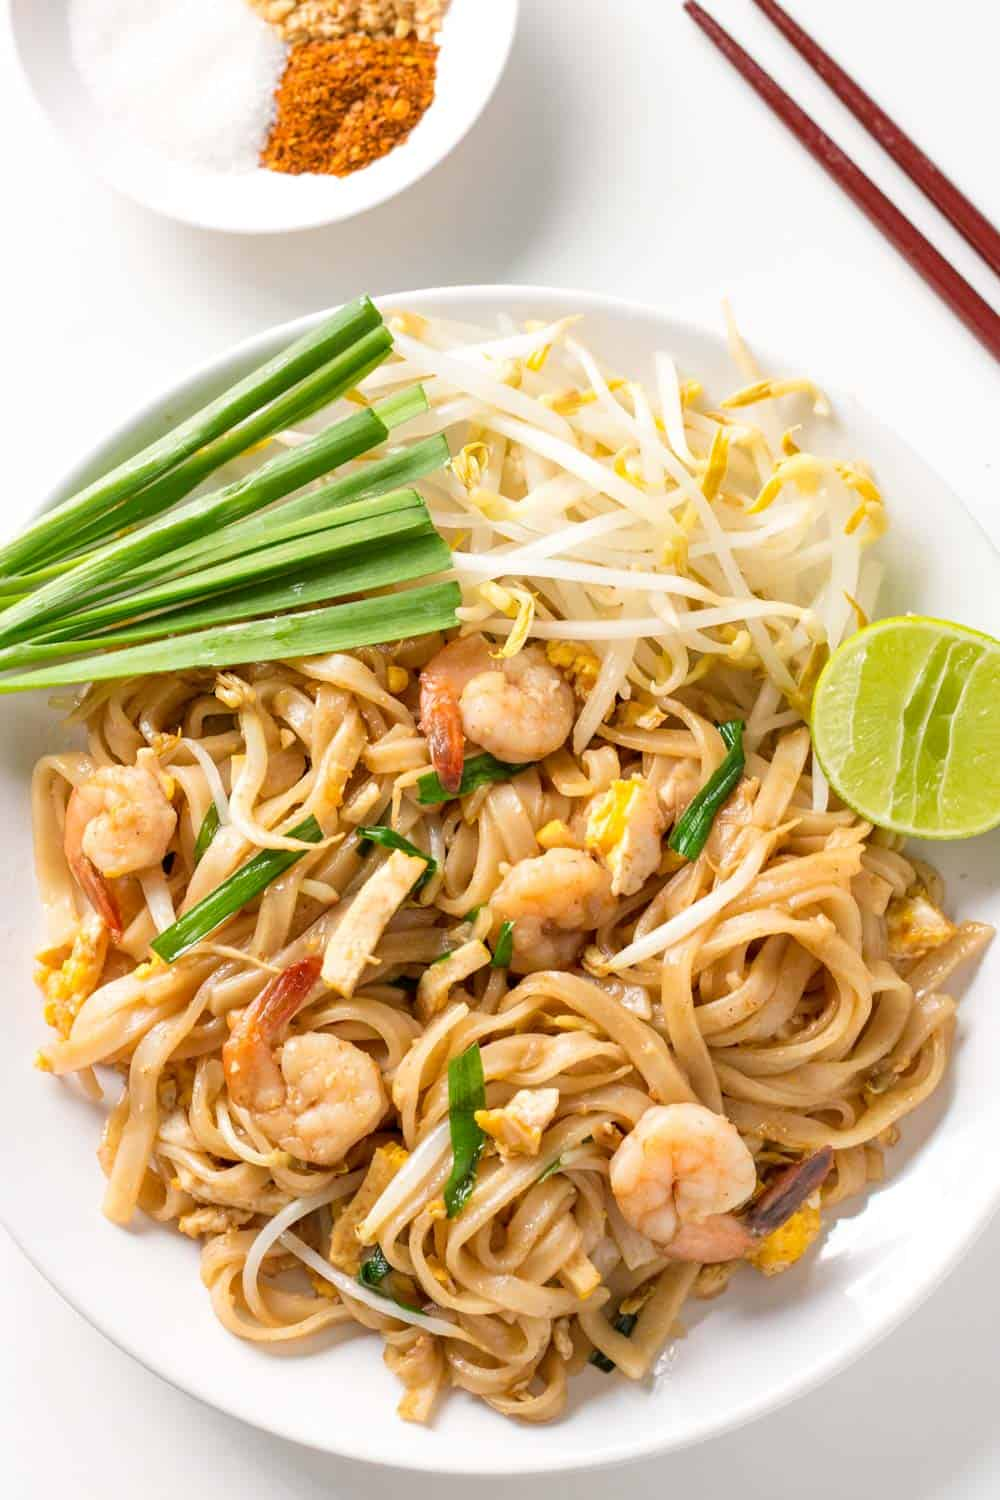 This is THE BEST Shrimp Pad Thai Recipe! I learnt it in a cooking class ef8978448